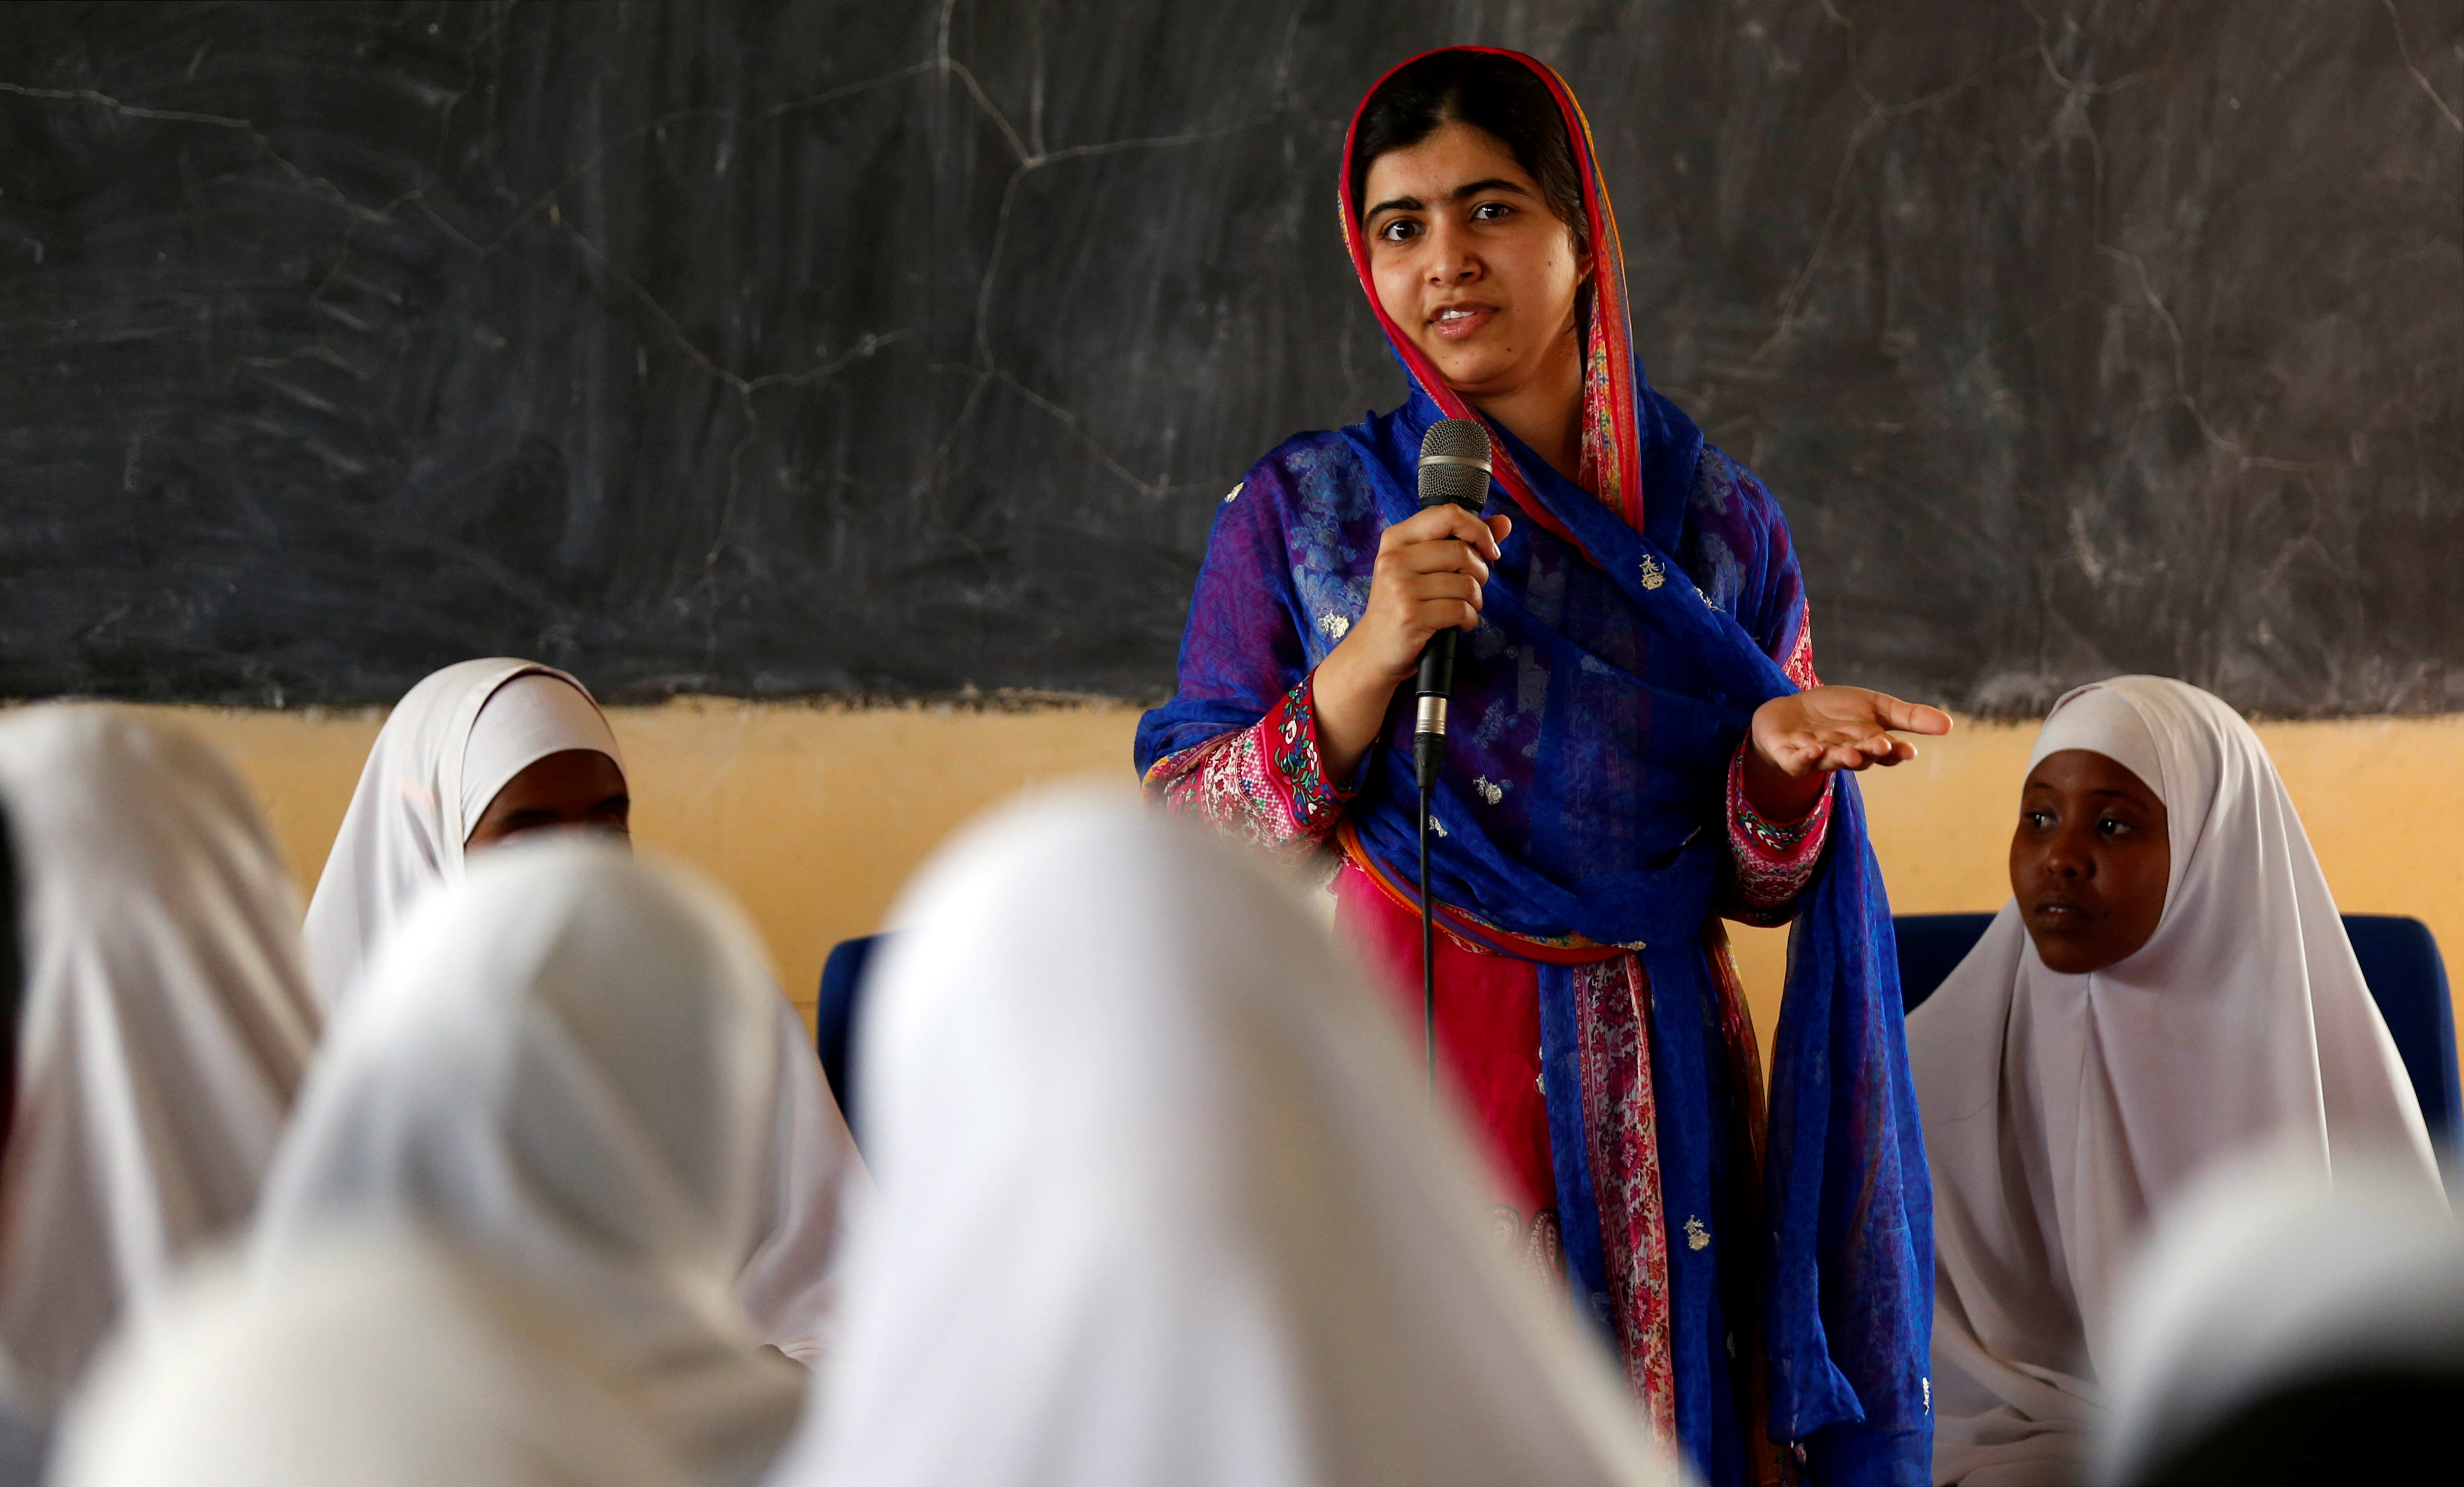 Pakistani Nobel Peace Prize laureate Malala Yousafzai addresses students at the Nasib Secondary School in Ifo2 area of Dadaab refugee camp during celebrations to mark her 19th birthday near the Kenya-Somalia border, July 12, 2016.